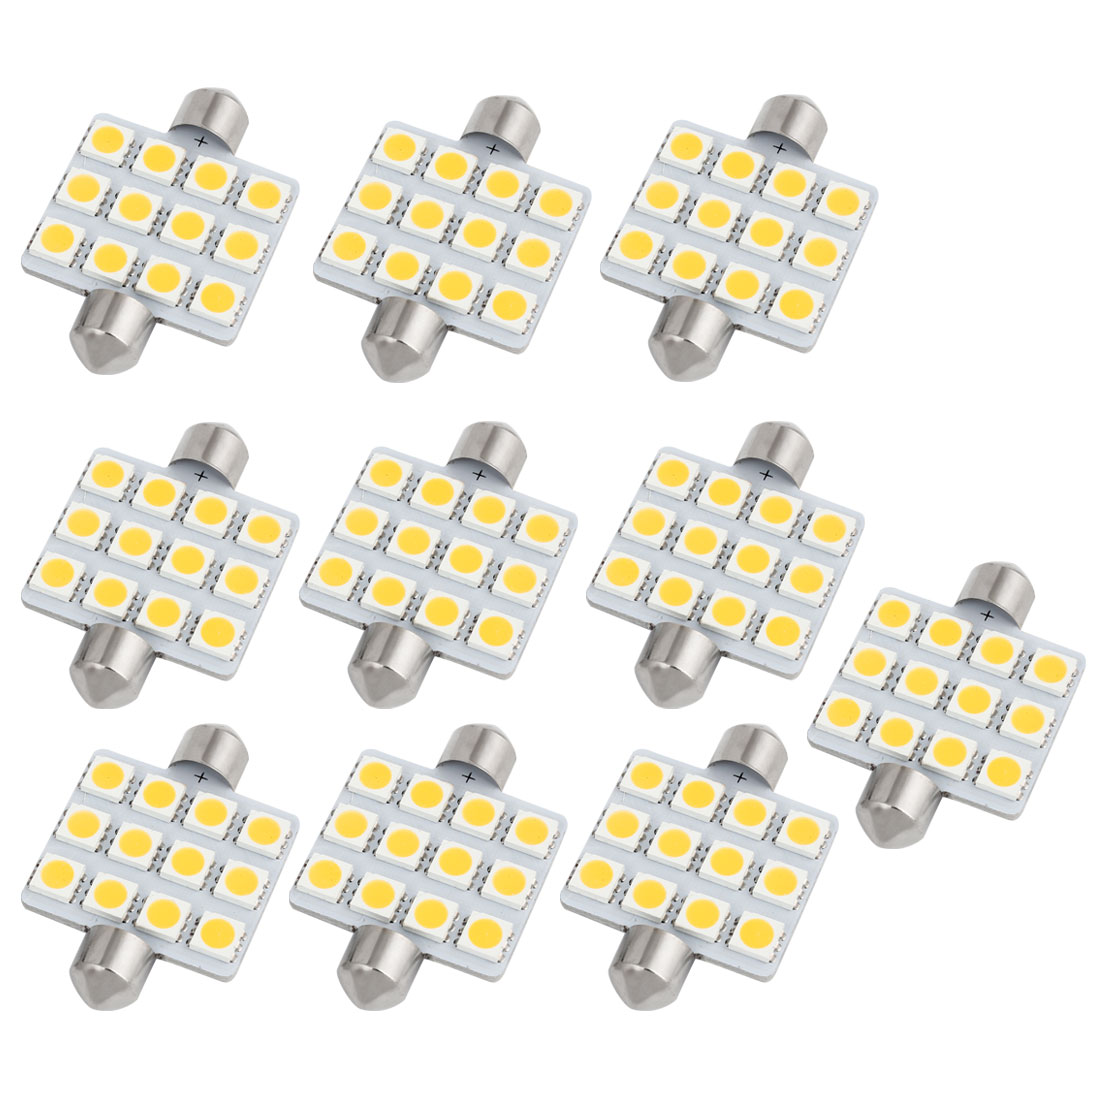 10pcs 41mm 5050 SMD 12-LED Festoon Dome Light Warm White 211 212 569 Internal